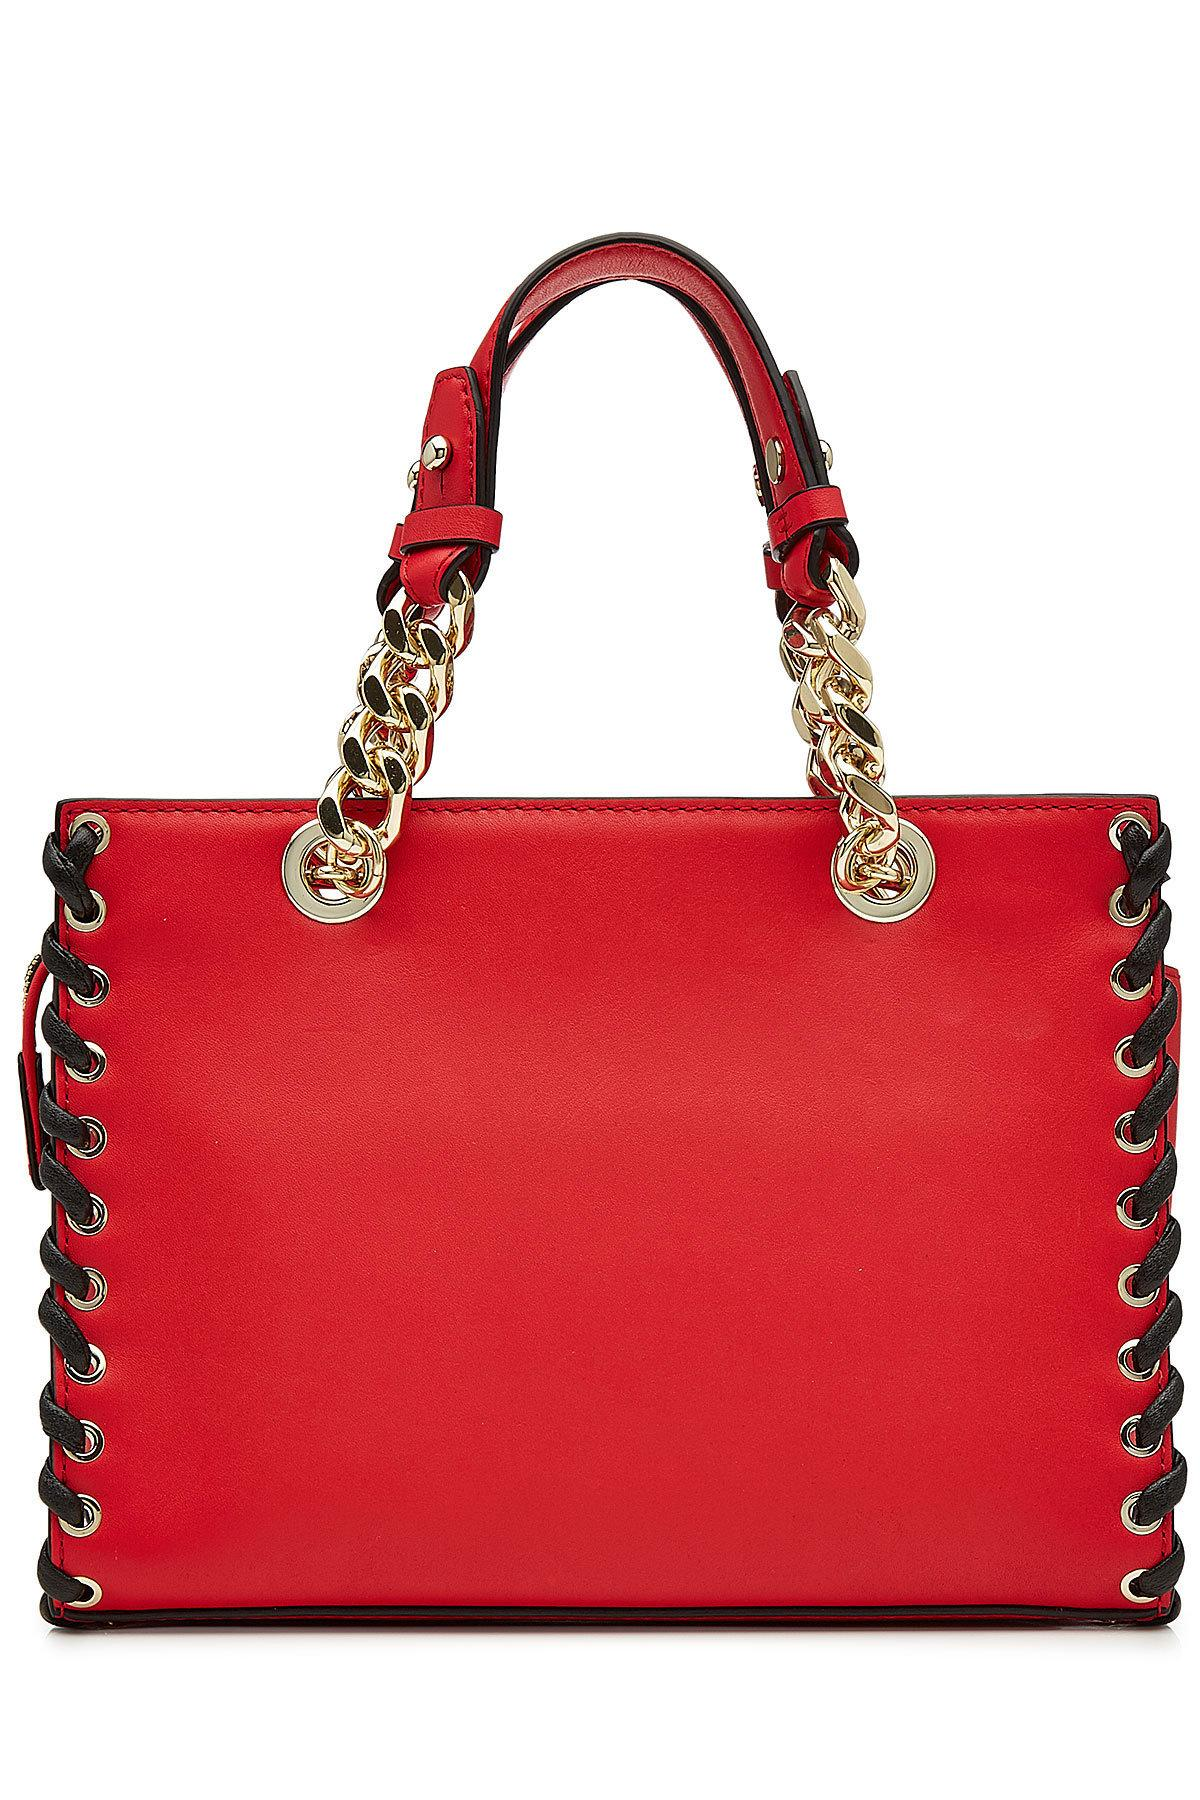 Lyst Karl Lagerfeld Leather Tote In Red